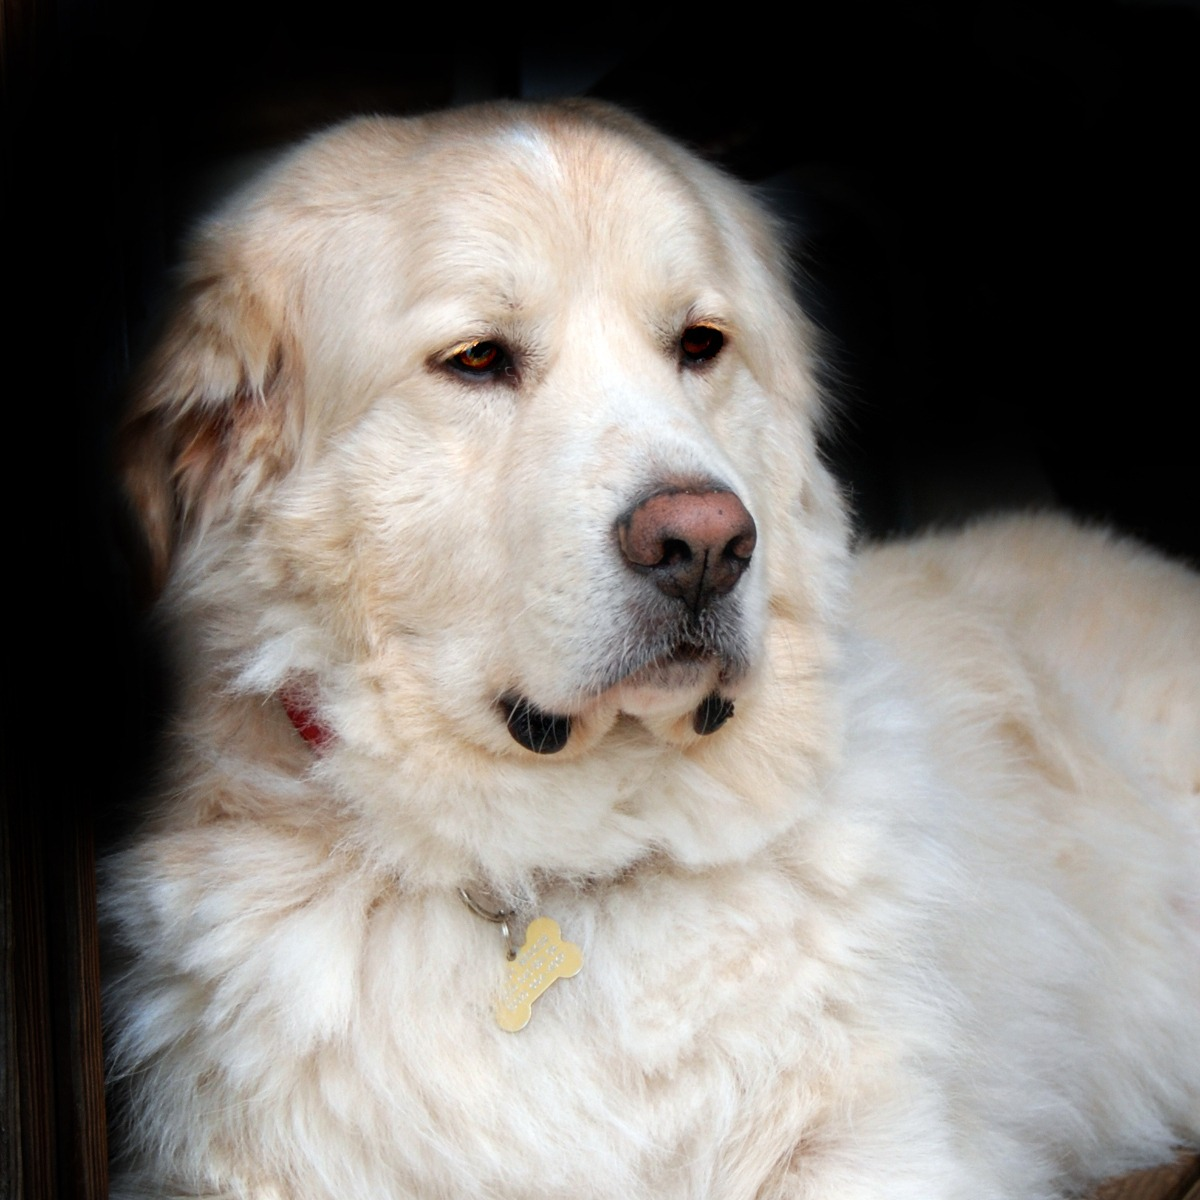 Buddy - Great Pyreneese / Golden Retriever - All Our Paws Mascot